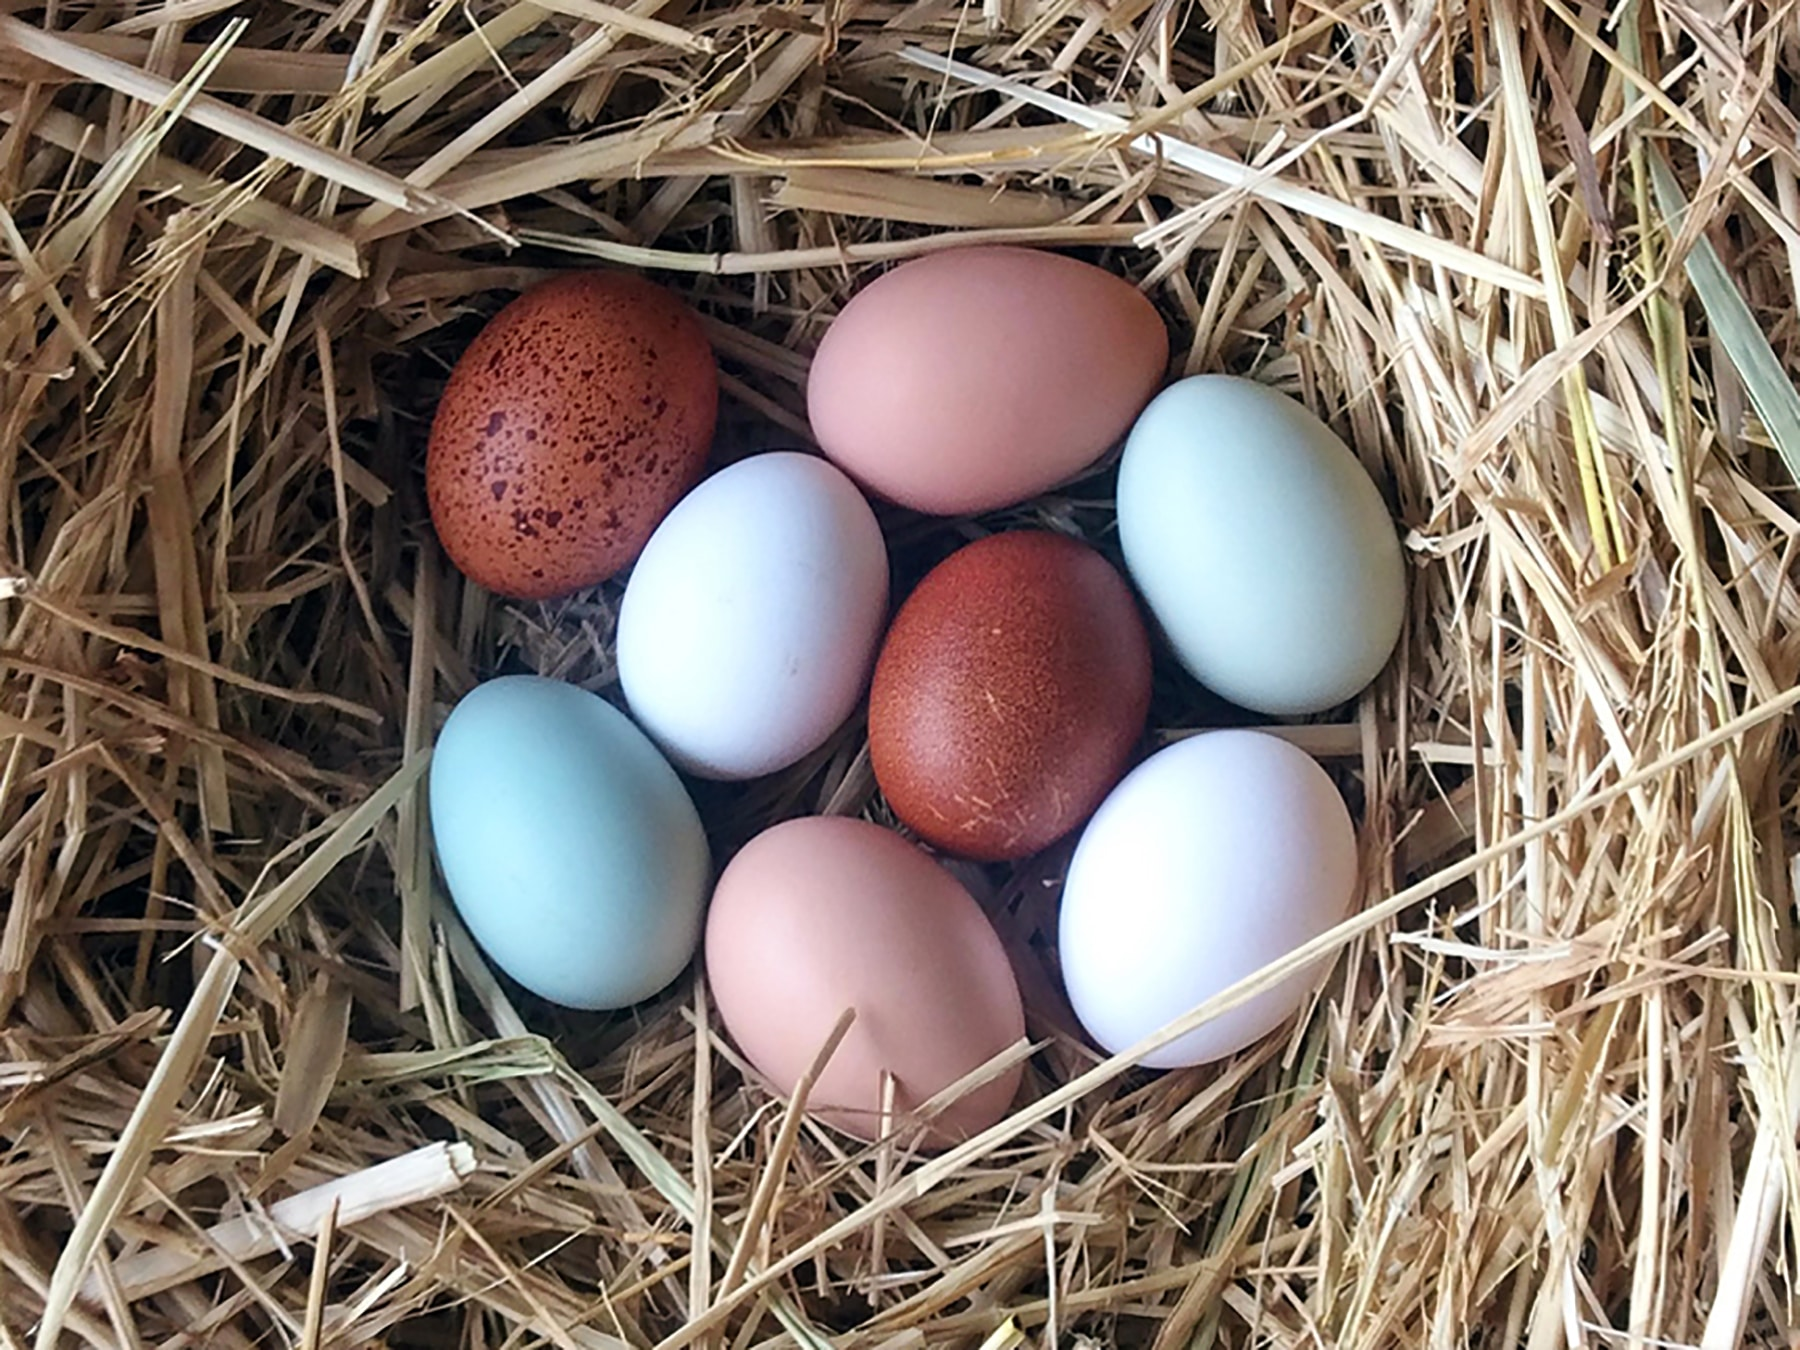 egg-laying breeds